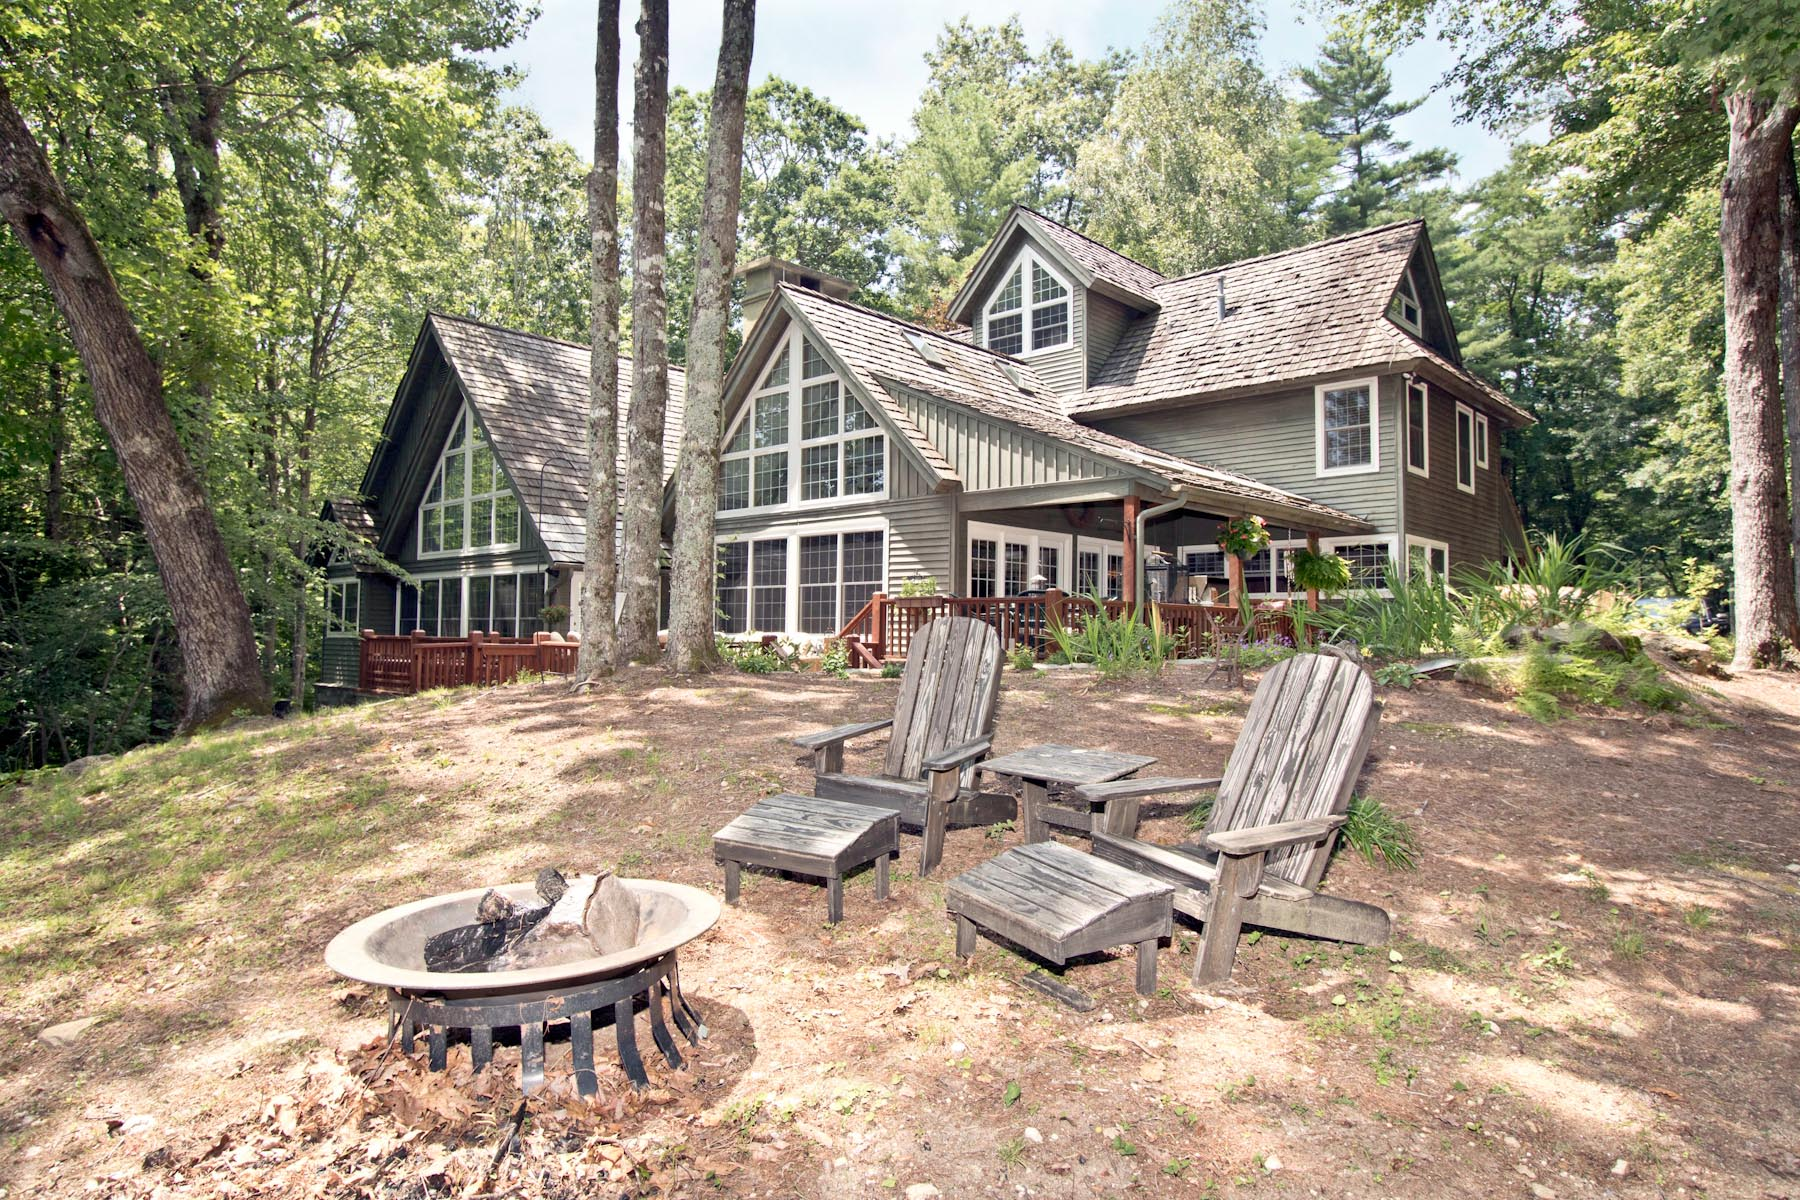 Single Family Home for Sale at Frazee 105 Old Cove Road Highlands, North Carolina, 28741 United States